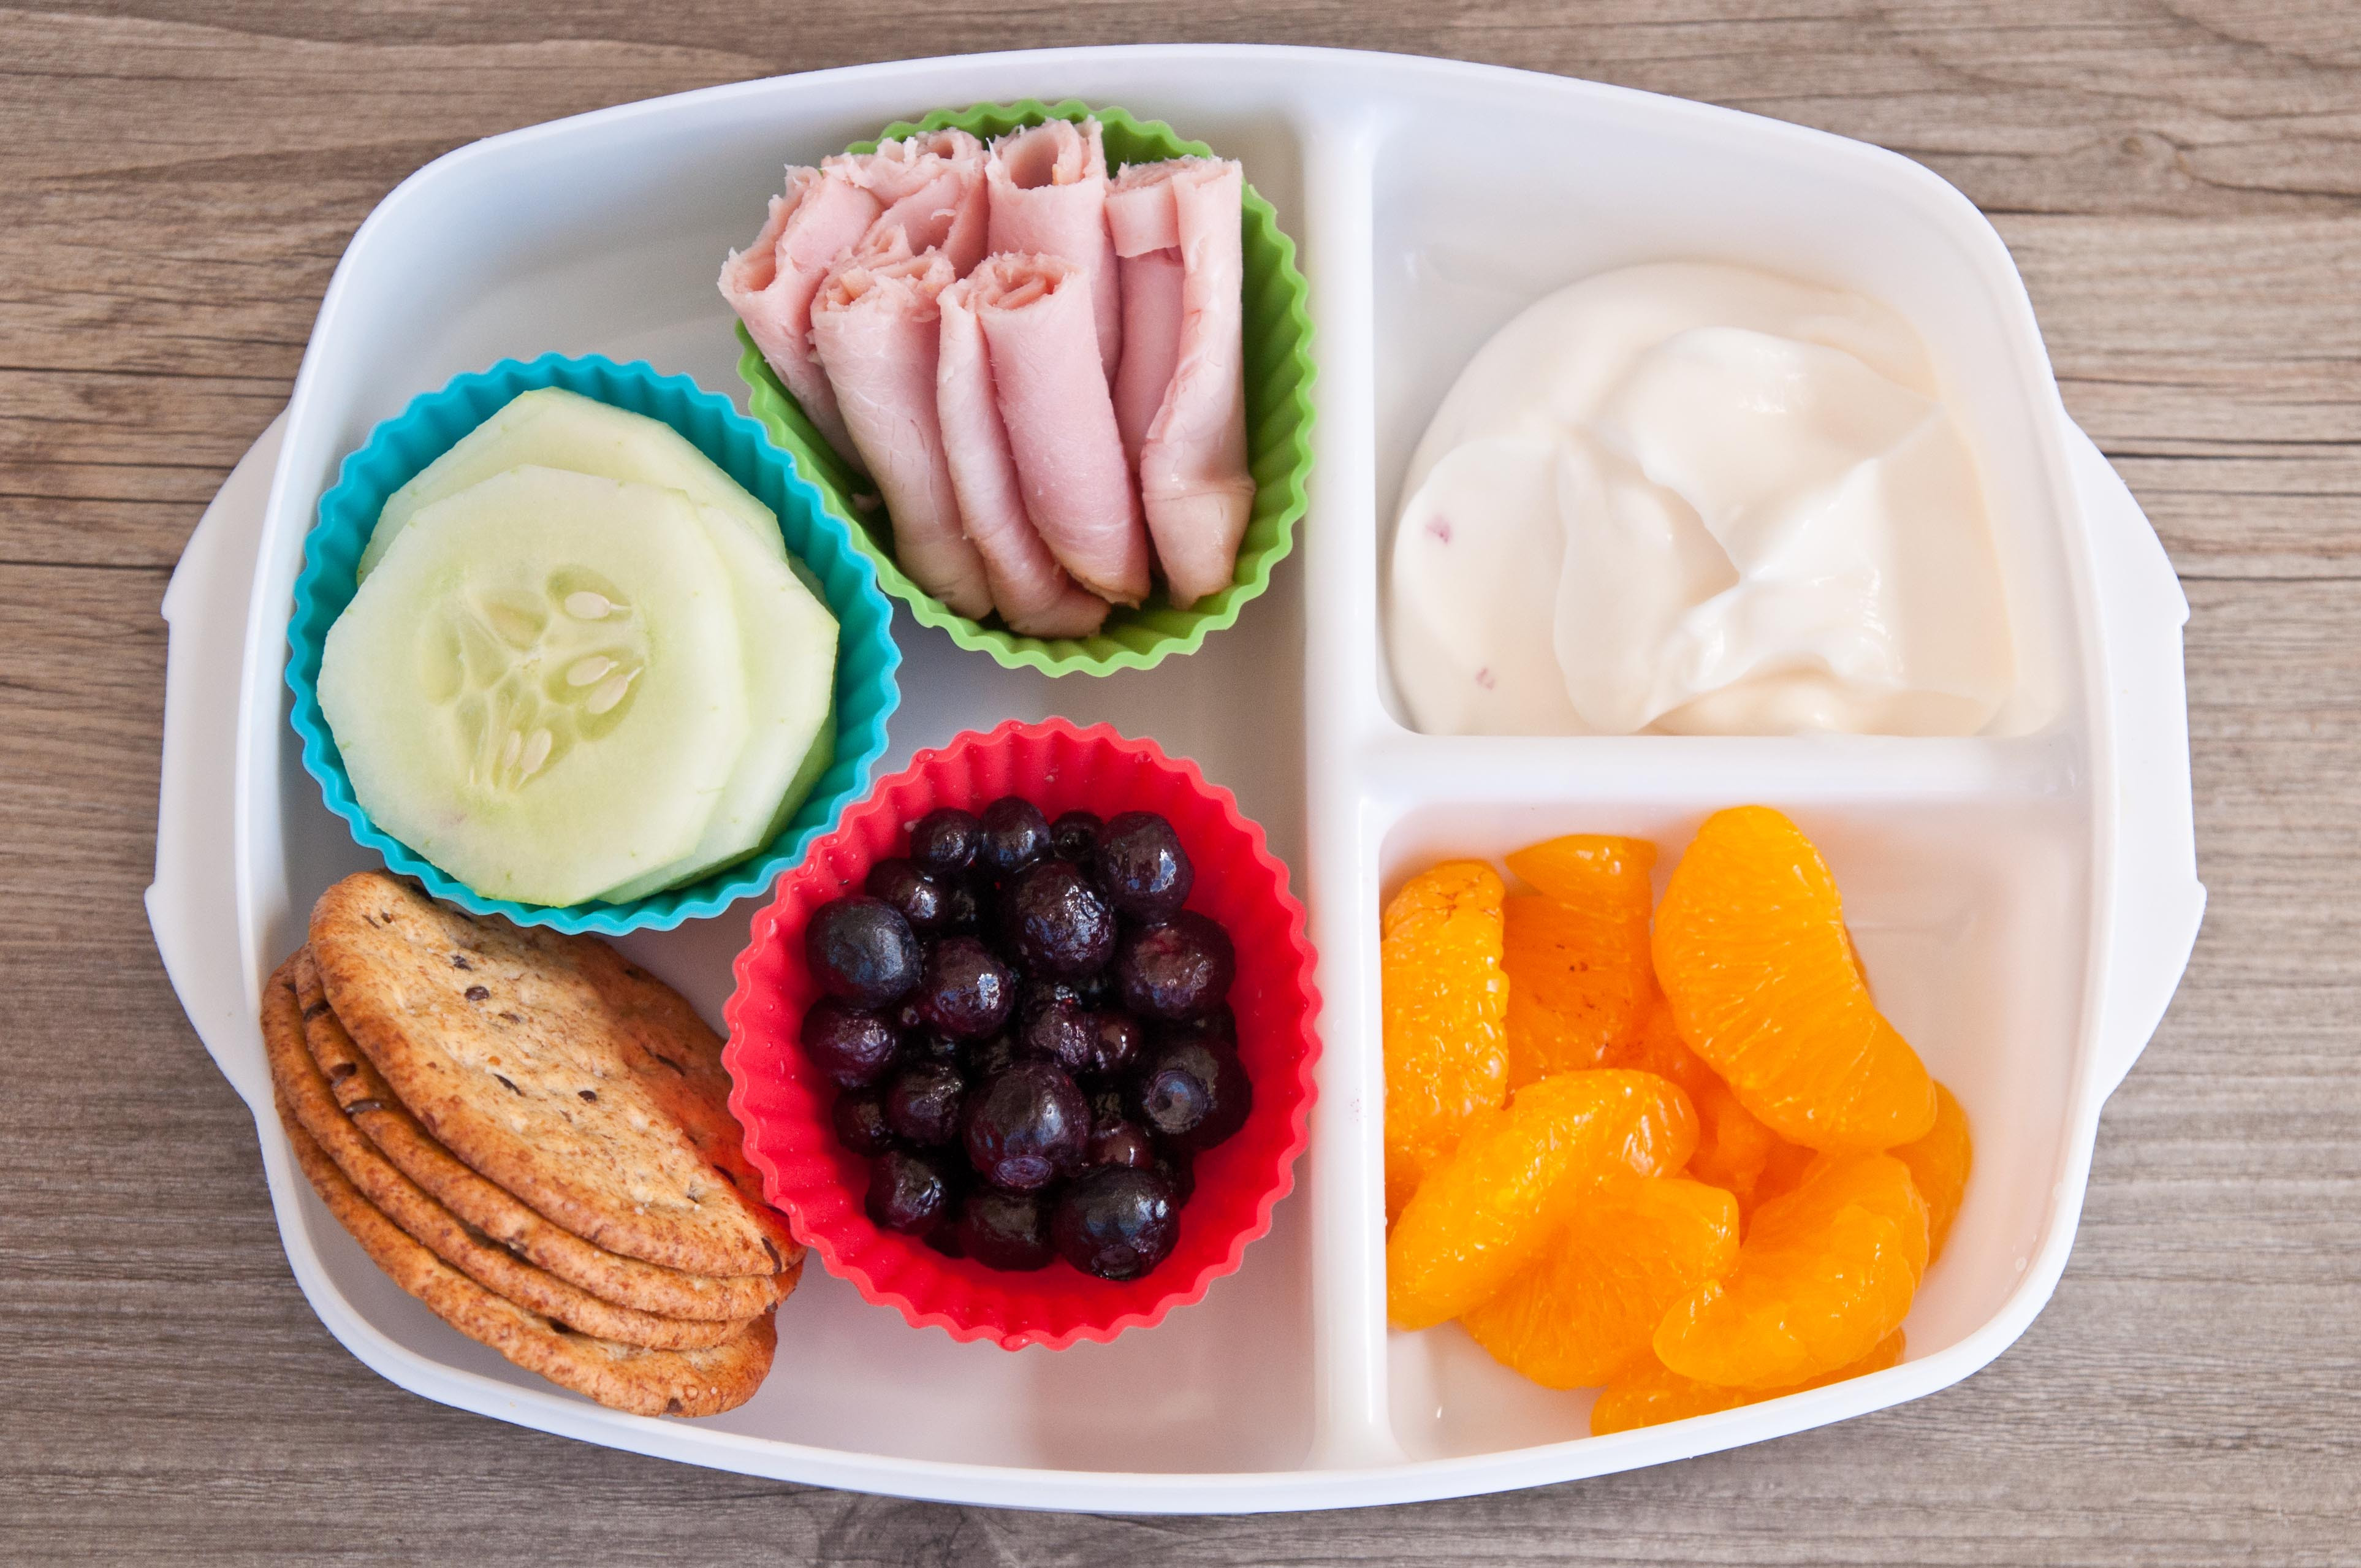 Healthy Snacks To Pack For Lunch  School Lunch Versus Packed Lunch Interesting Research Tips